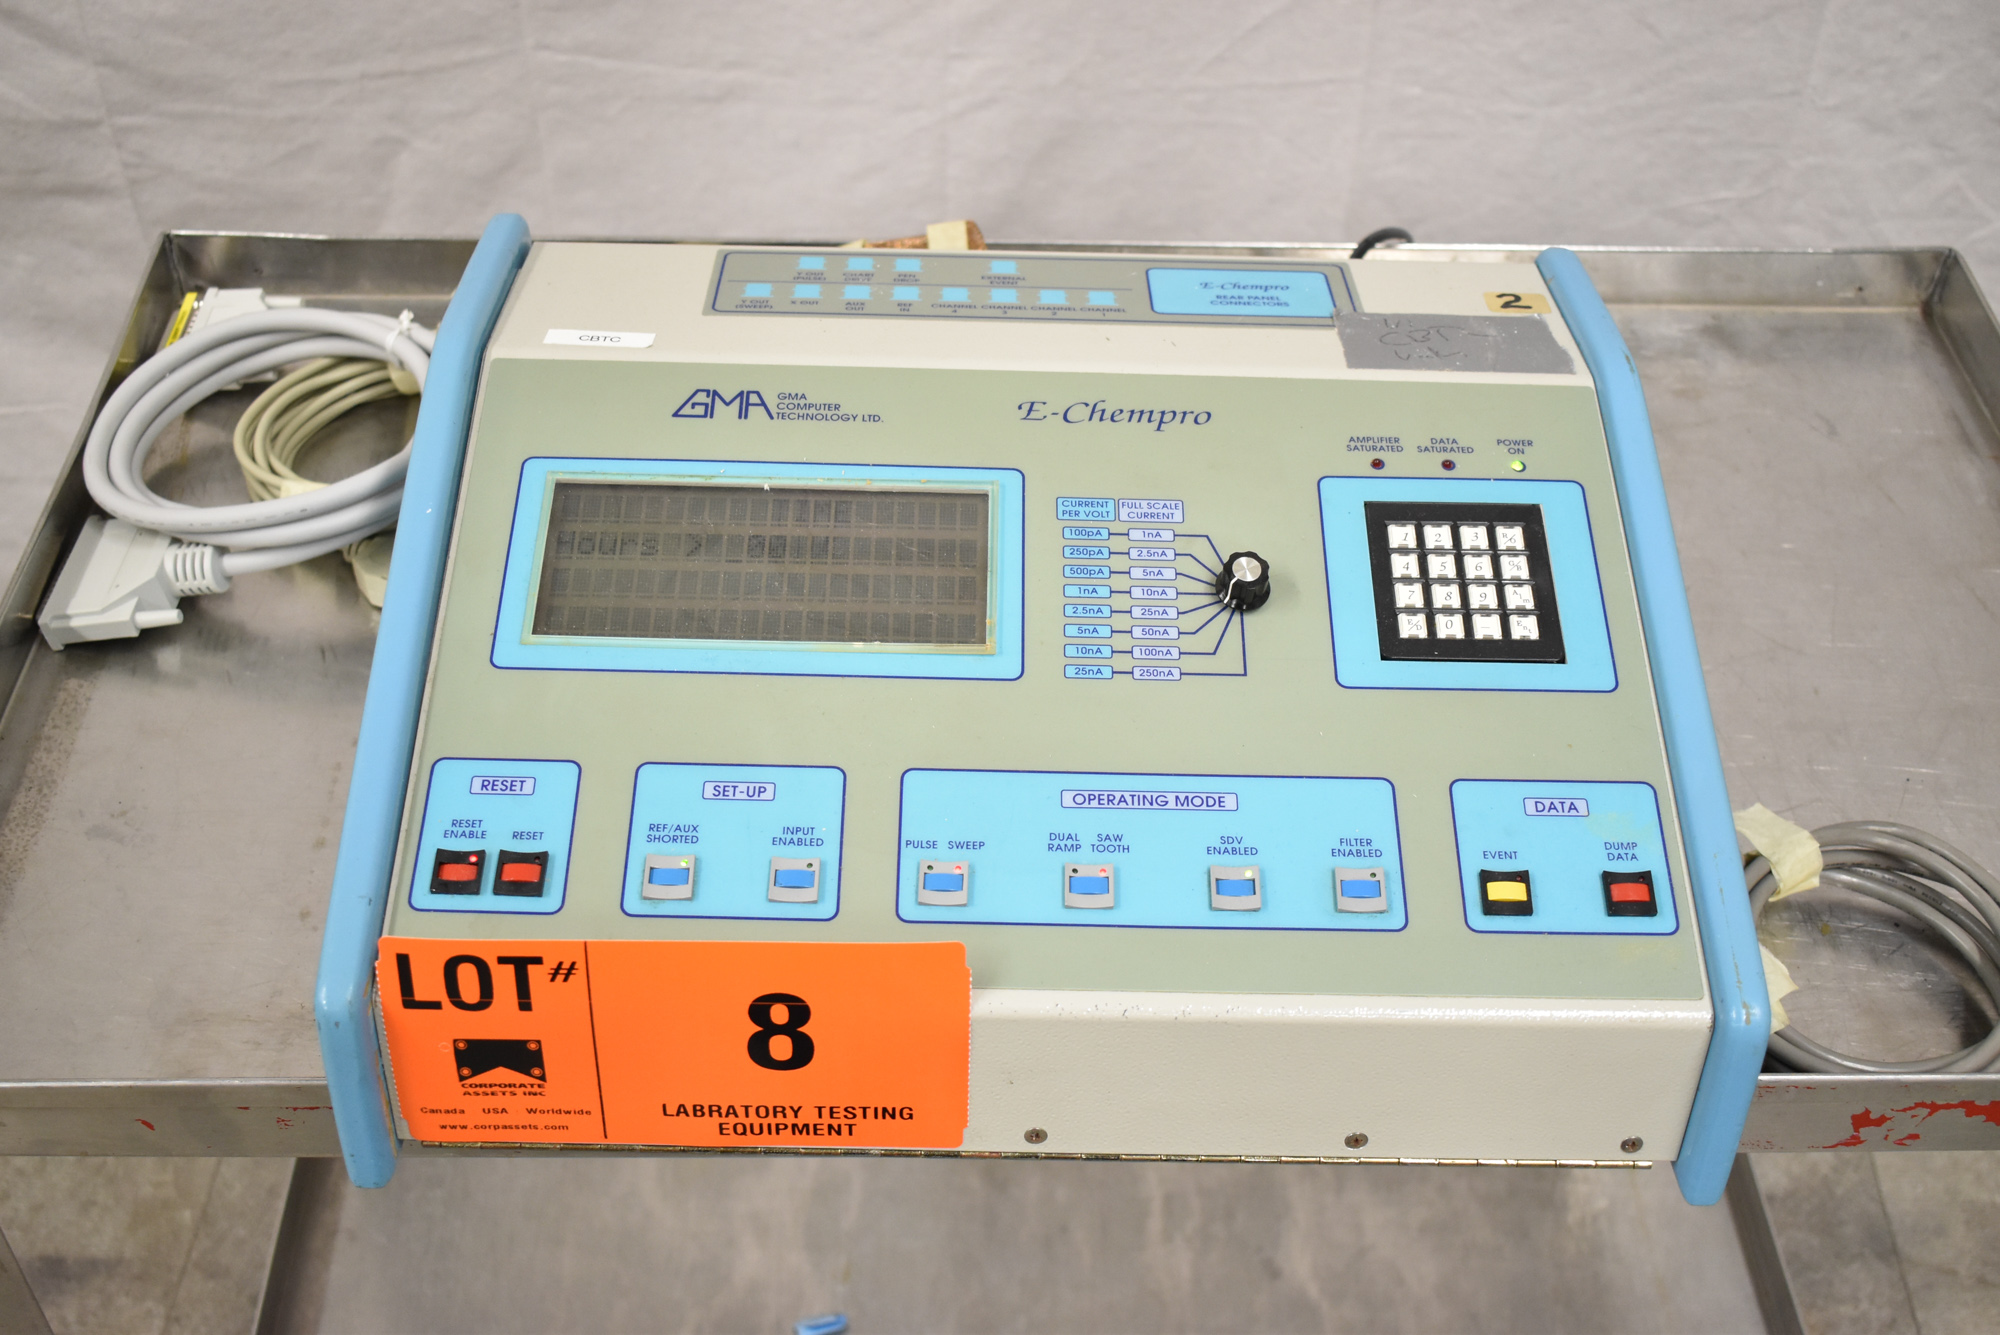 GMA E-CHEMPRO 1/220/50 HIGH SPEED SAMPLER WITH ATEN UC-232A USB TO SERIAL CONVERTER, S/N: 0002 [$ - Image 5 of 5